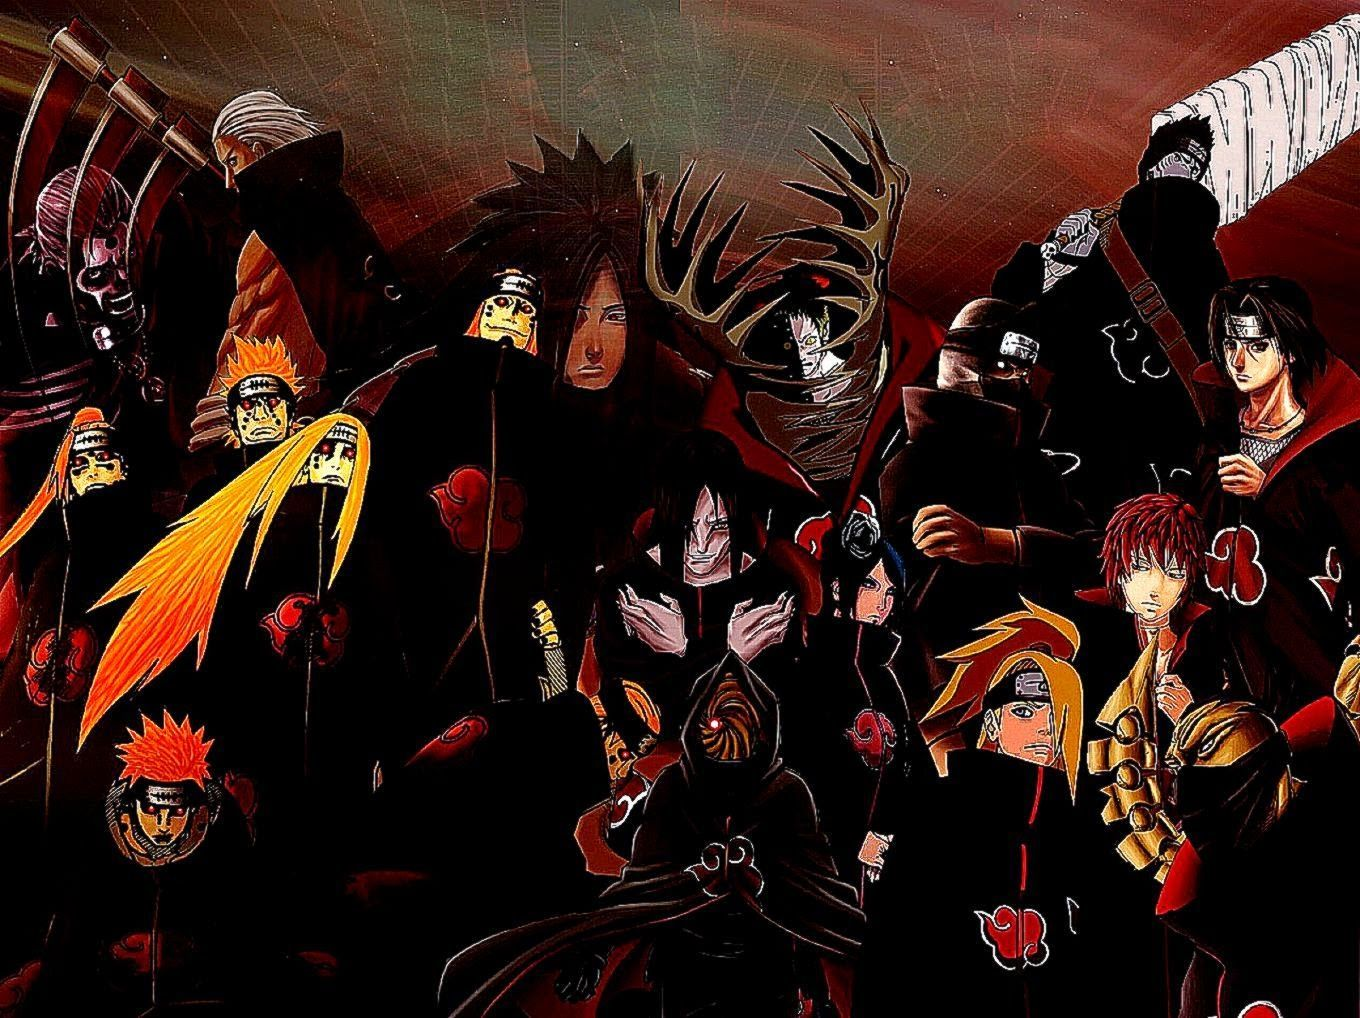 Naruto Akatsuki Wallpapers - Top Free Naruto Akatsuki Backgrounds